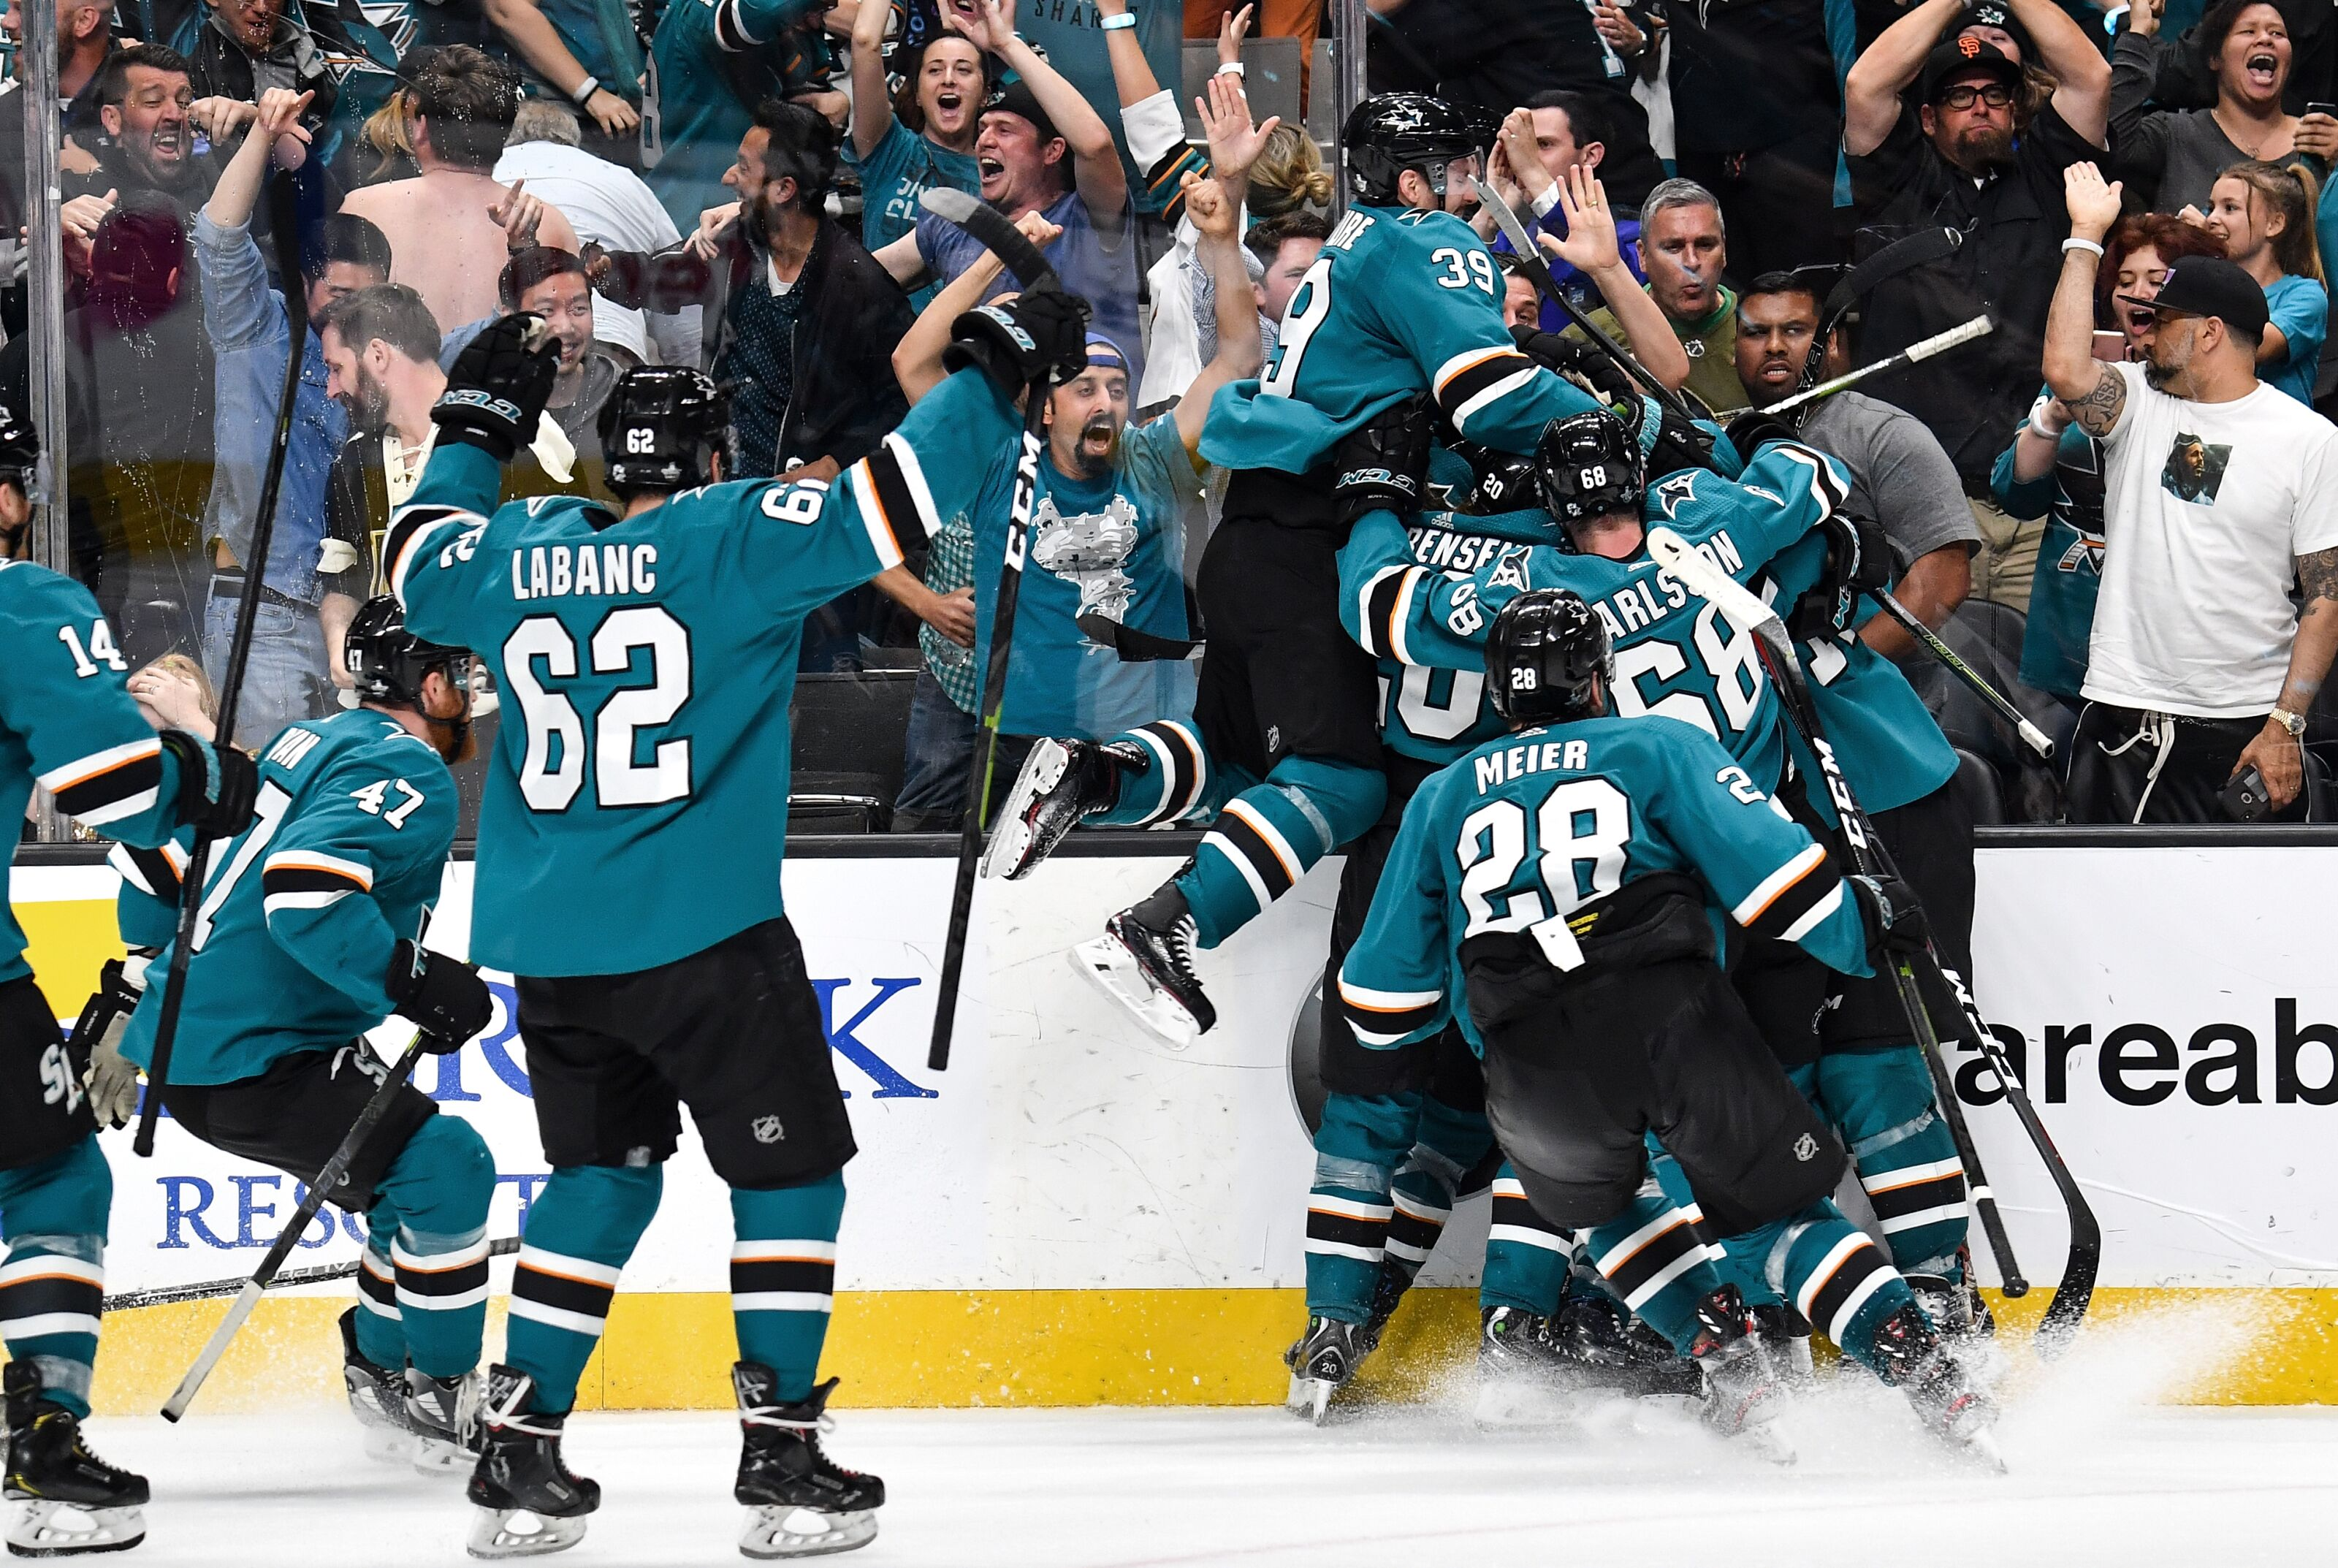 b02f57605fb Don't blame referees for San Jose Sharks beating Vegas Golden Knights